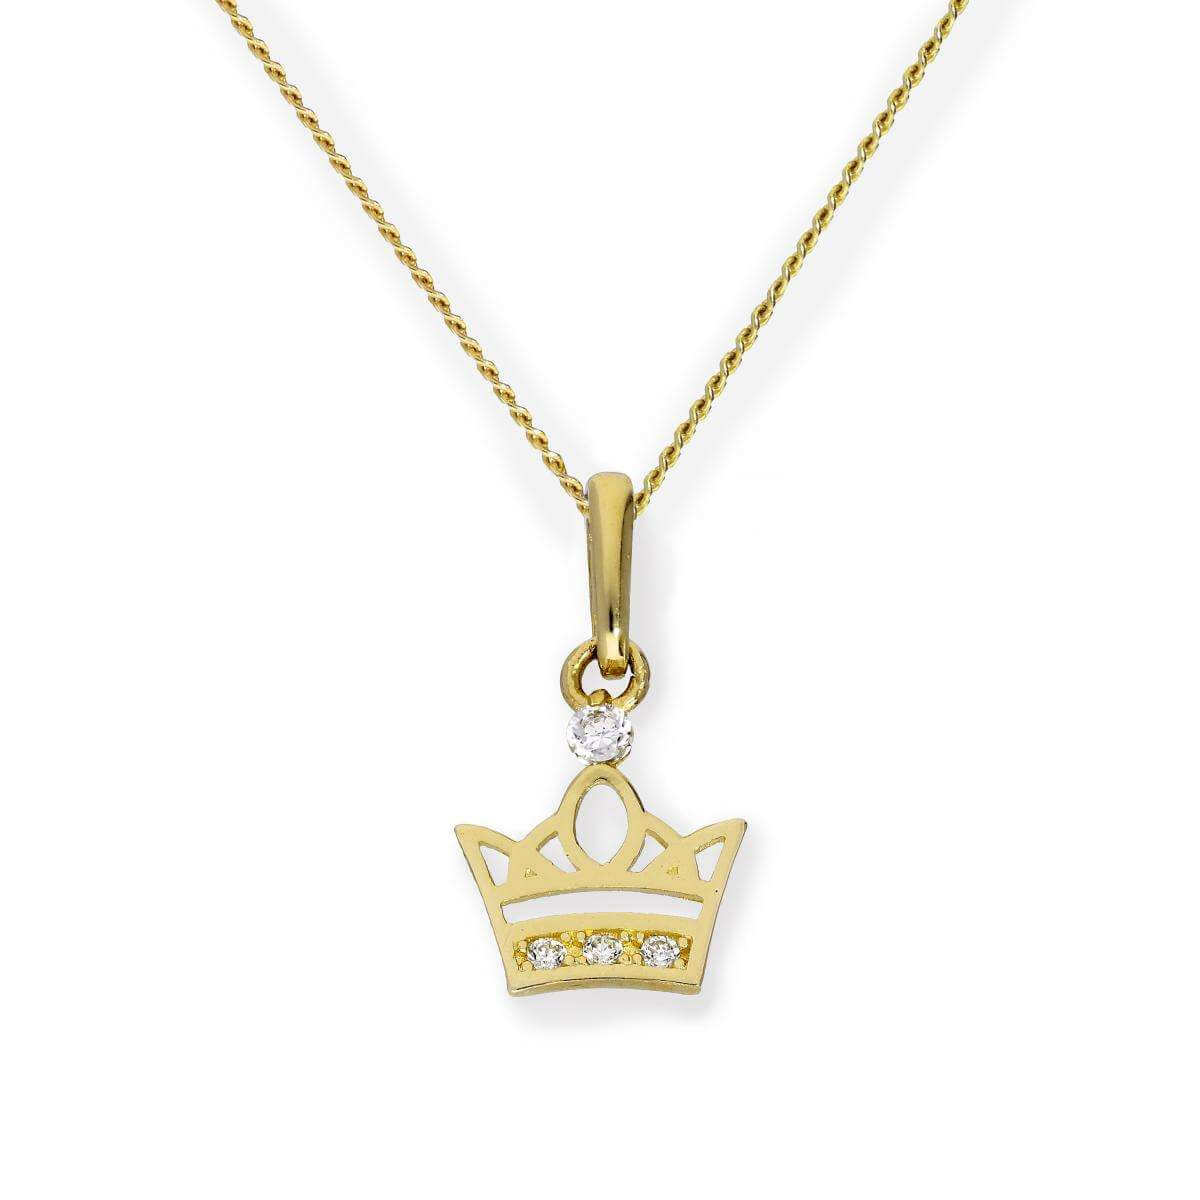 9ct Gold & Clear CZ Crystal Royal Crown Pendant Necklace